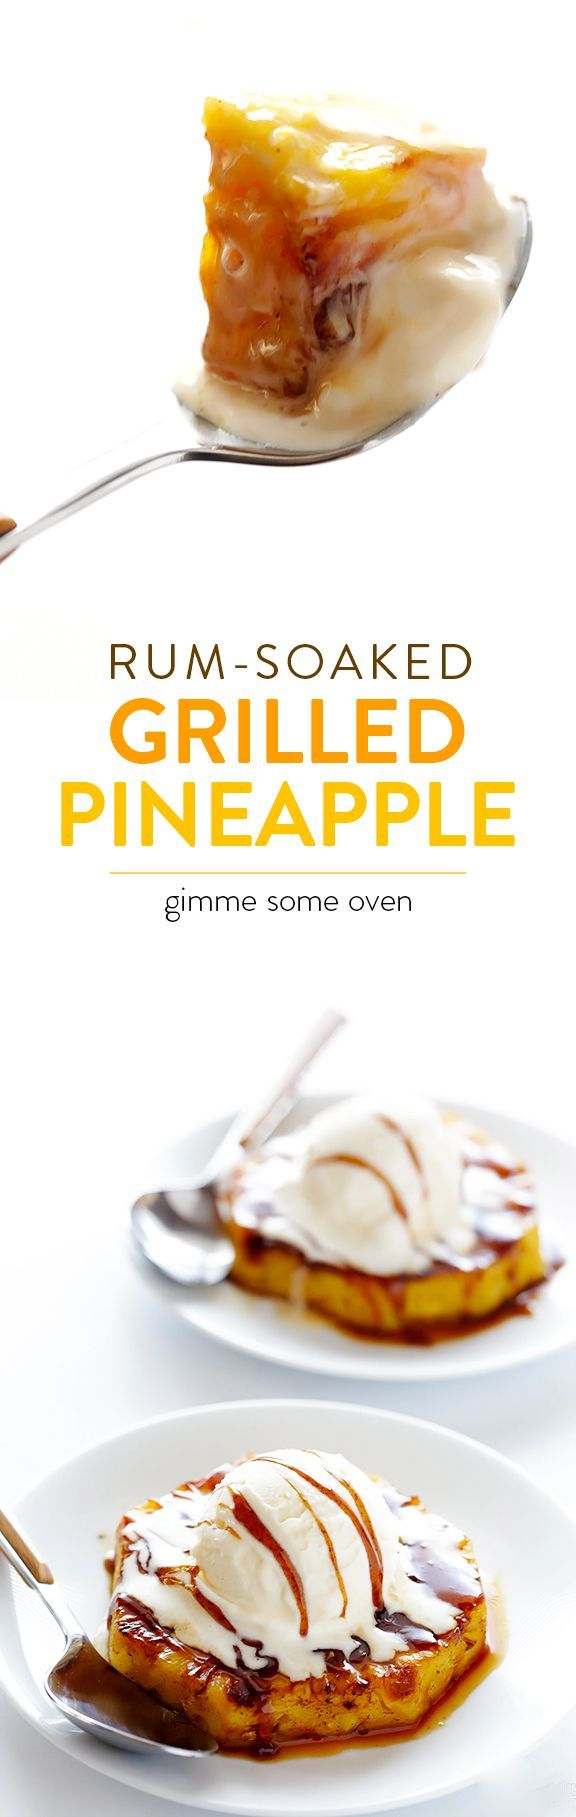 Rum-soaked grilled pineapple. This looks so scrumptious!